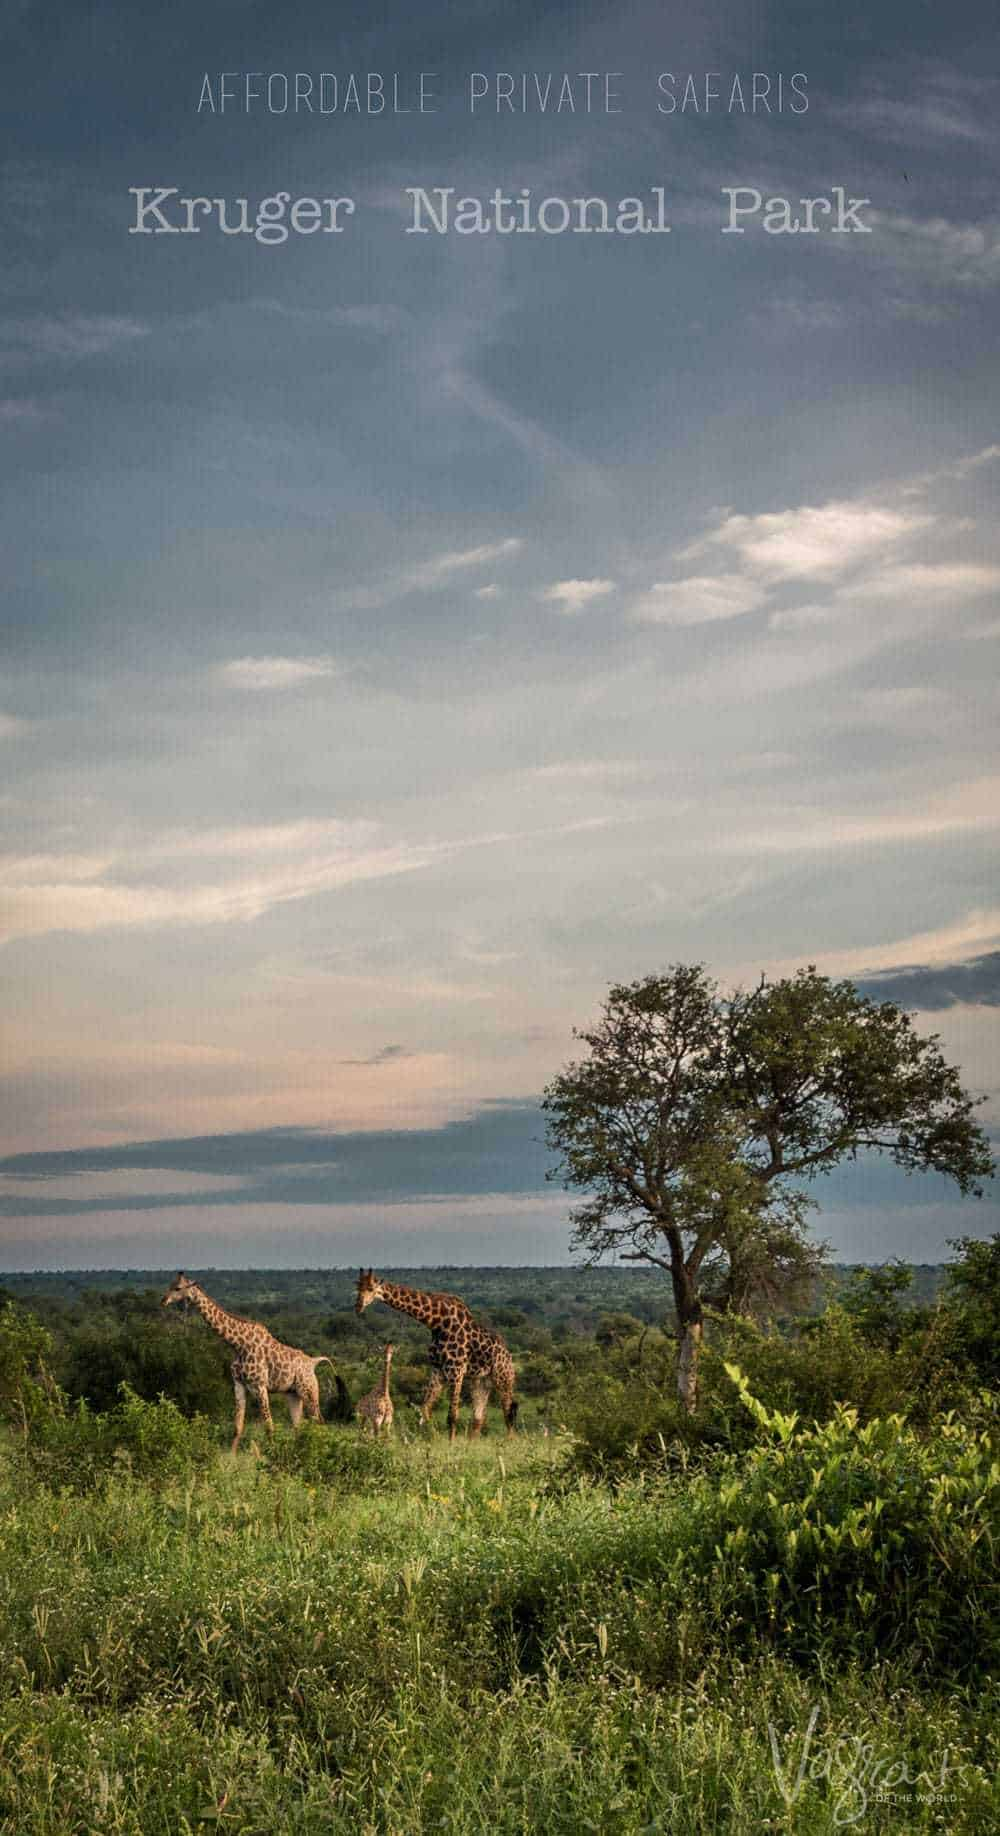 A full or half day private safari is a great way to experience Kruger National Park.